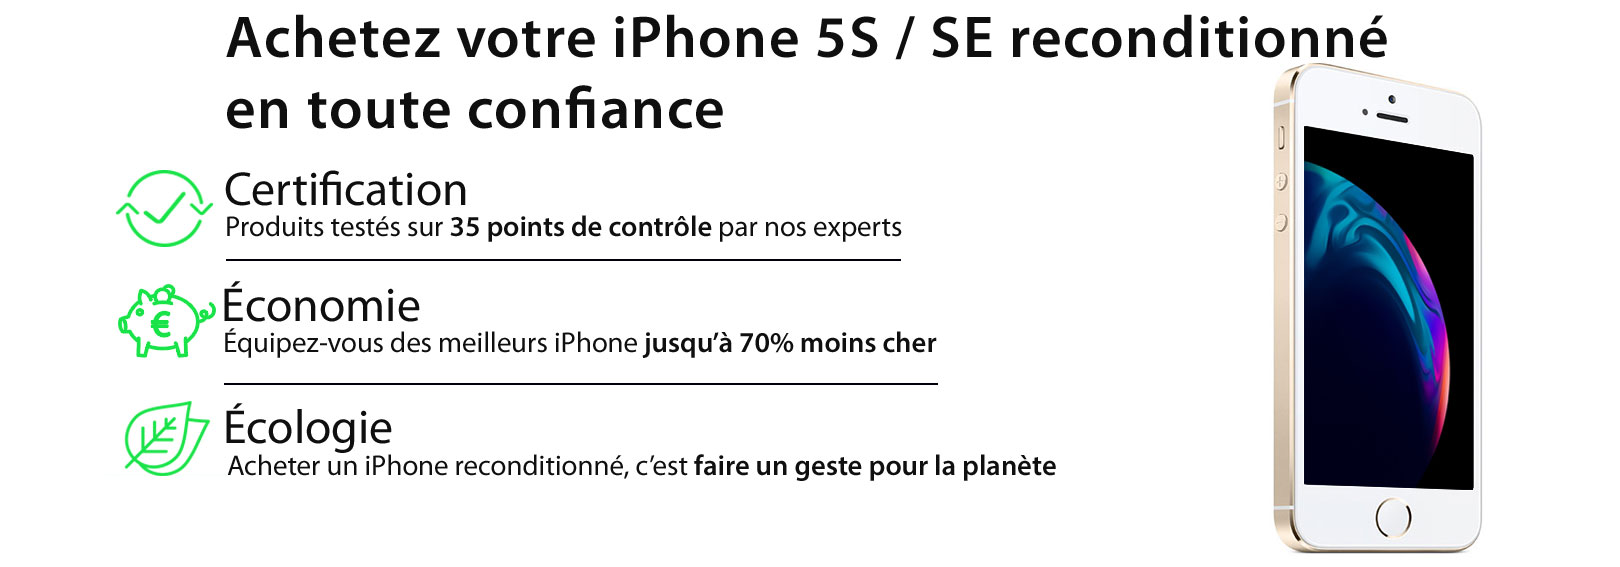 iPhone SE recondtionné